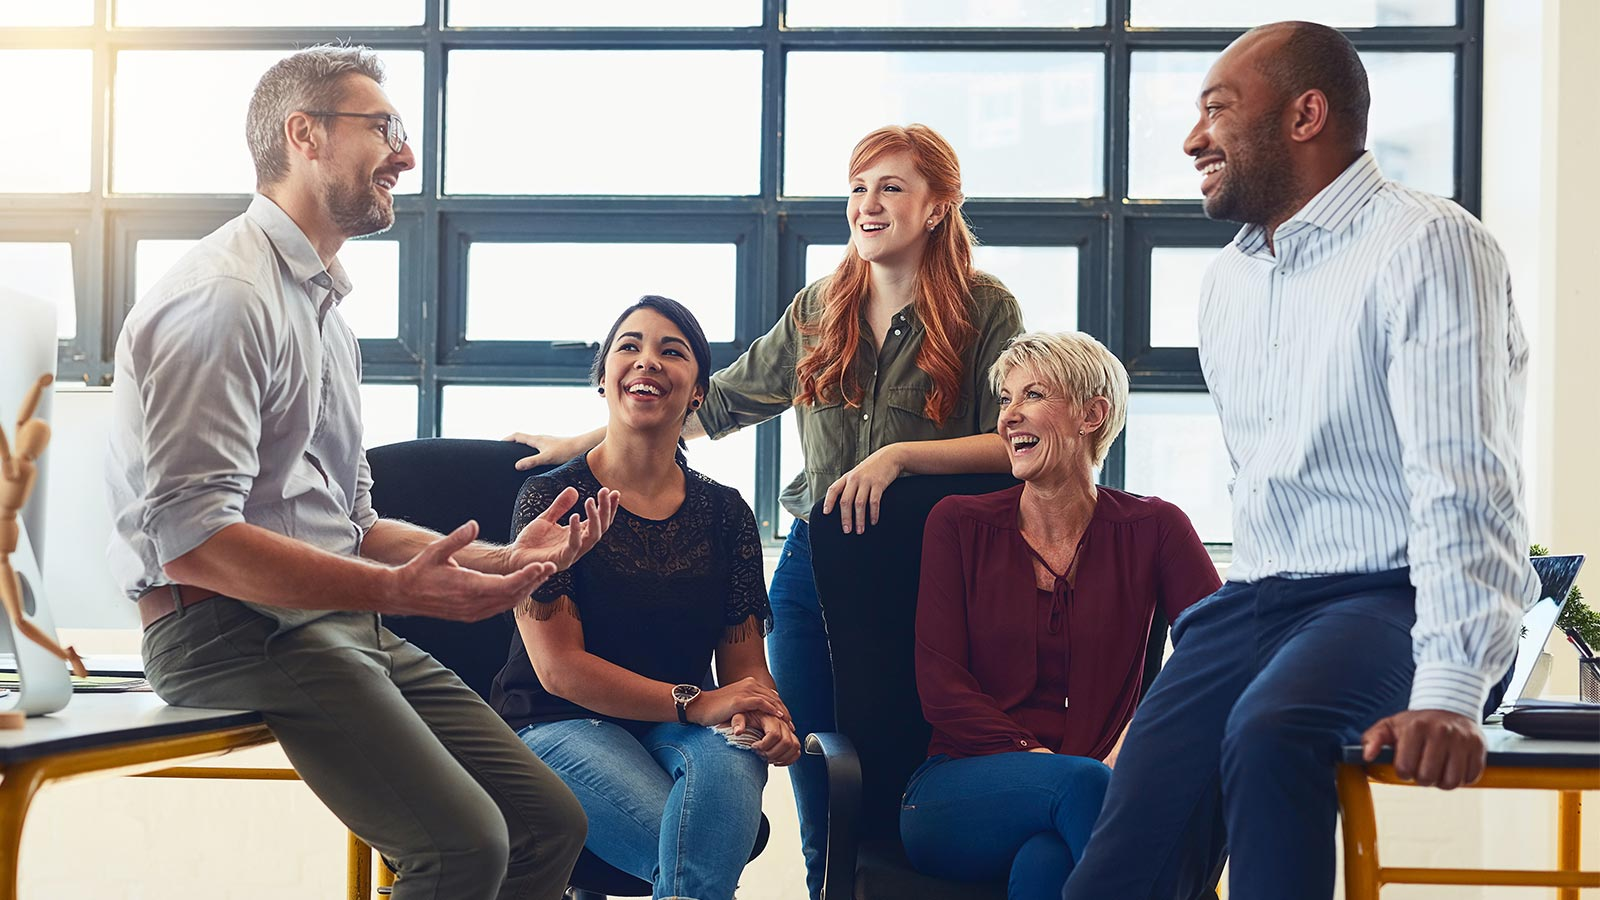 Group of five professional men and women talking and laughing.